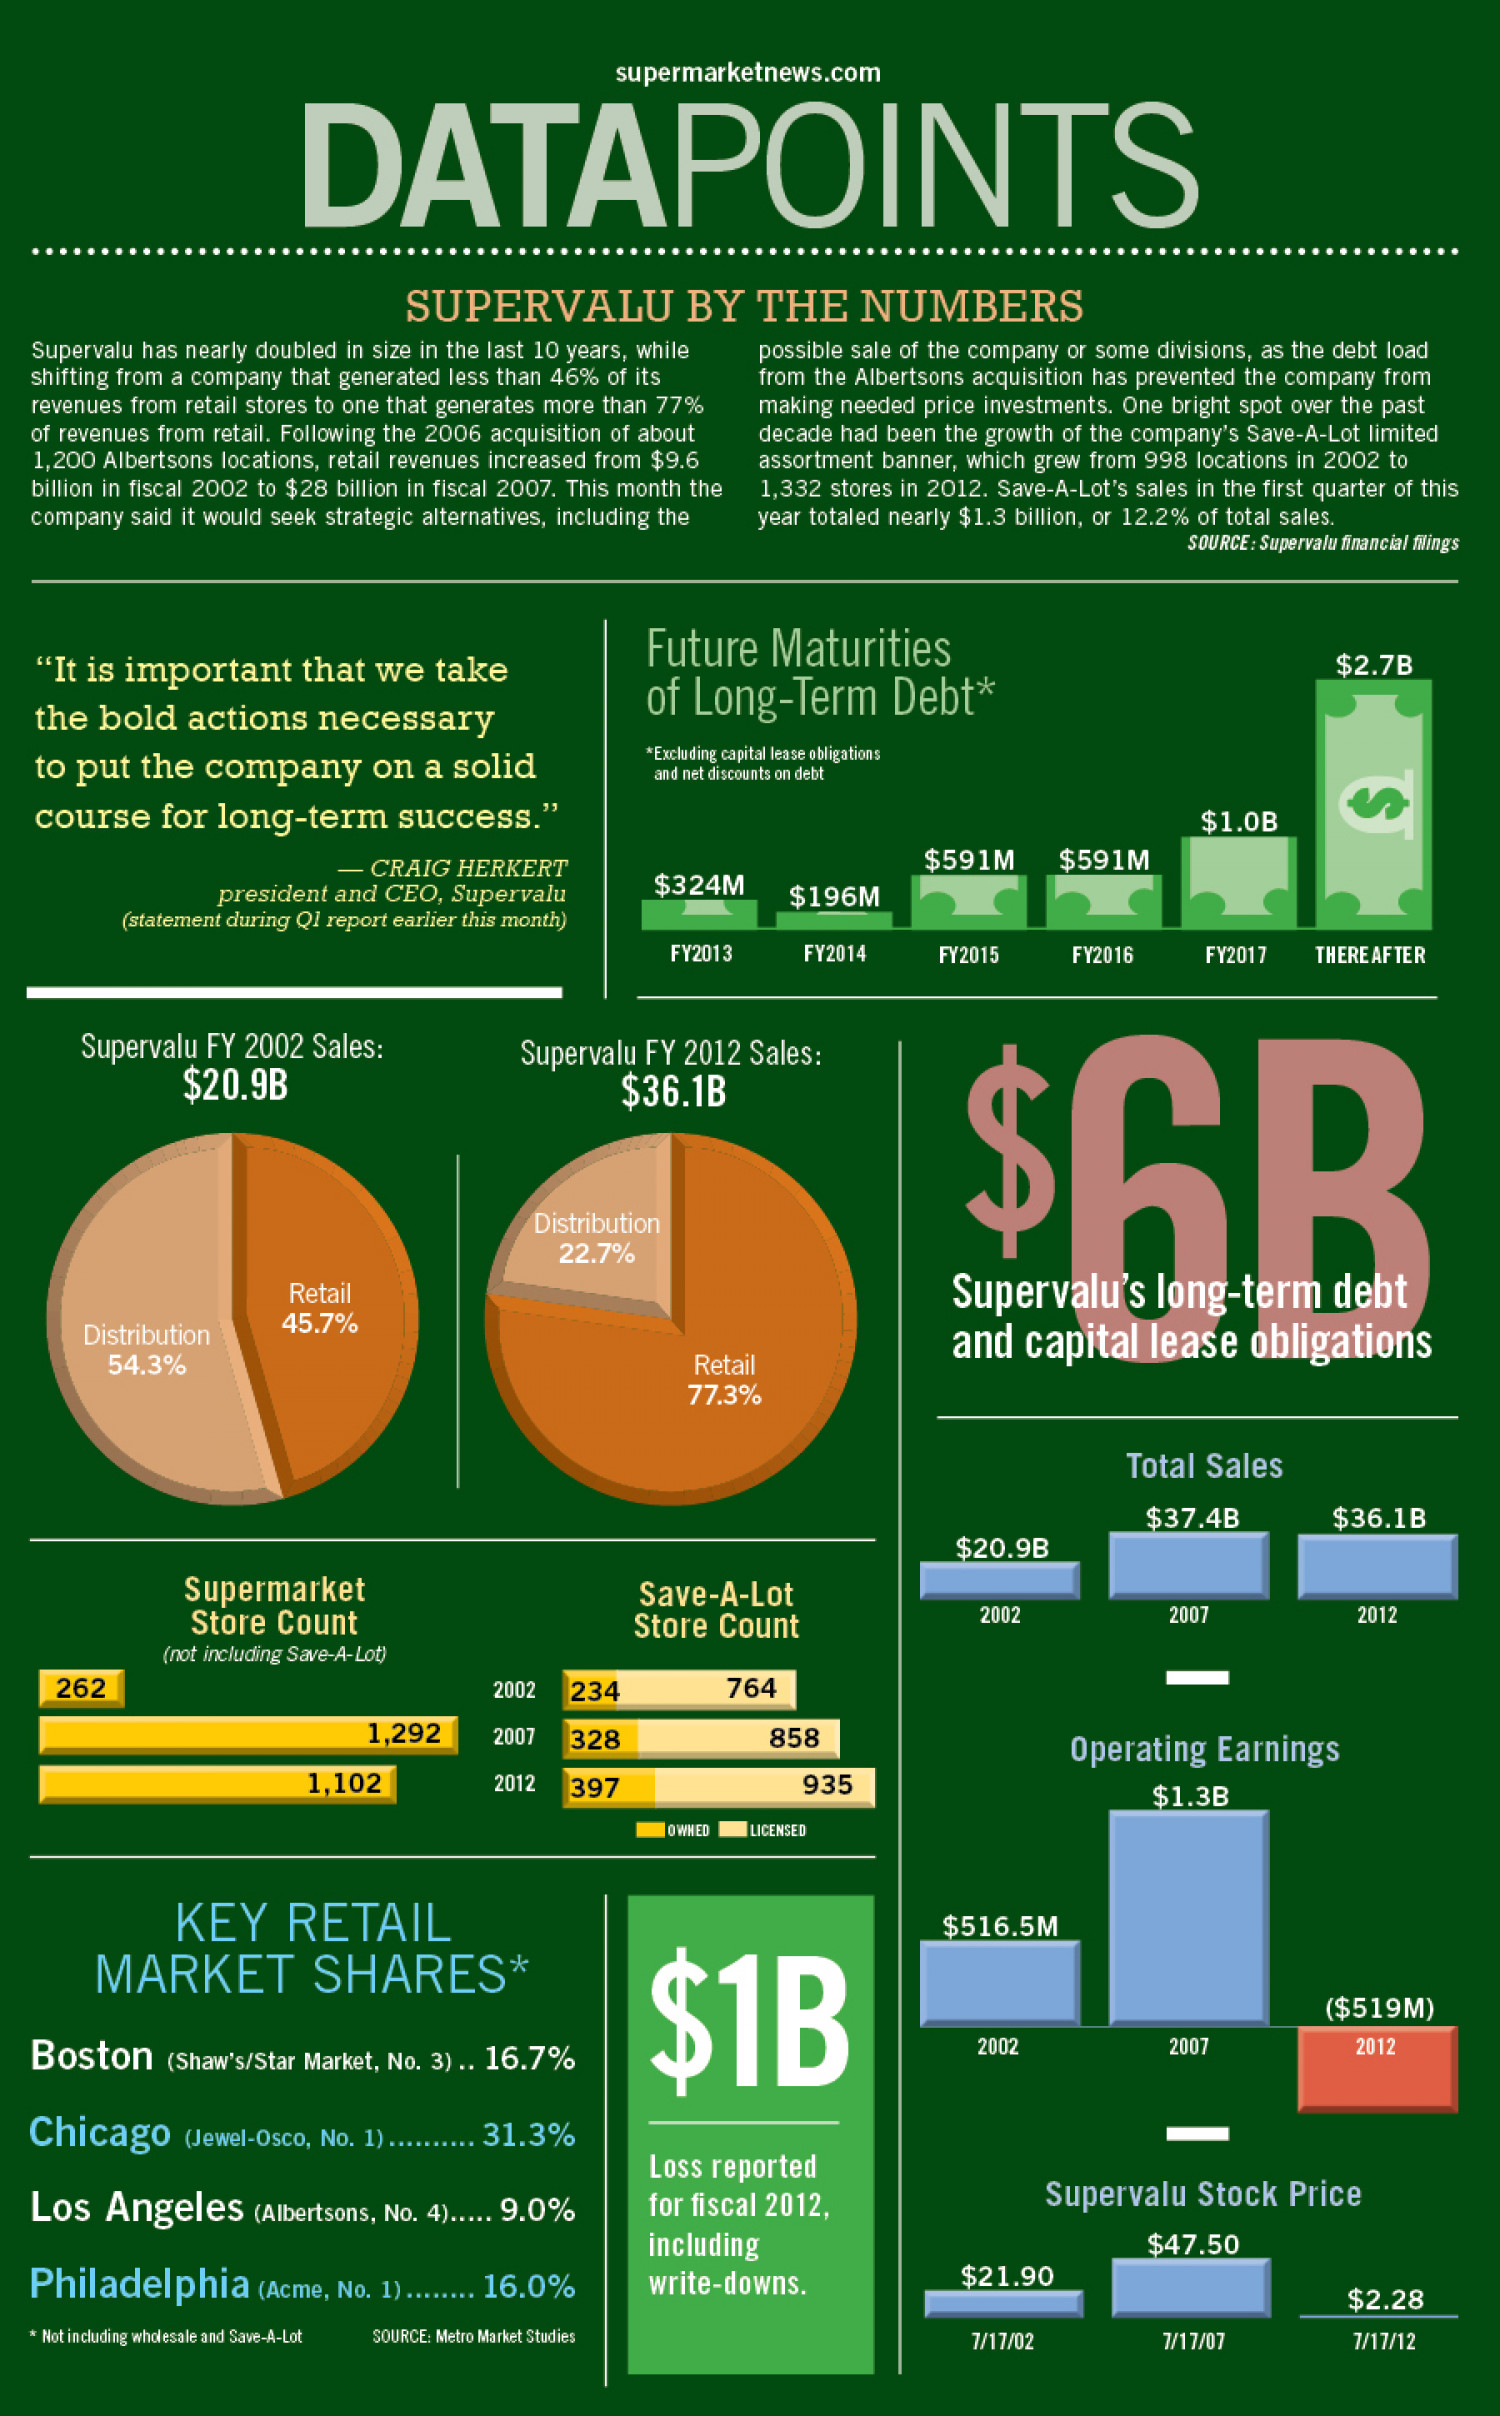 Supervalu by the Numbers Infographic